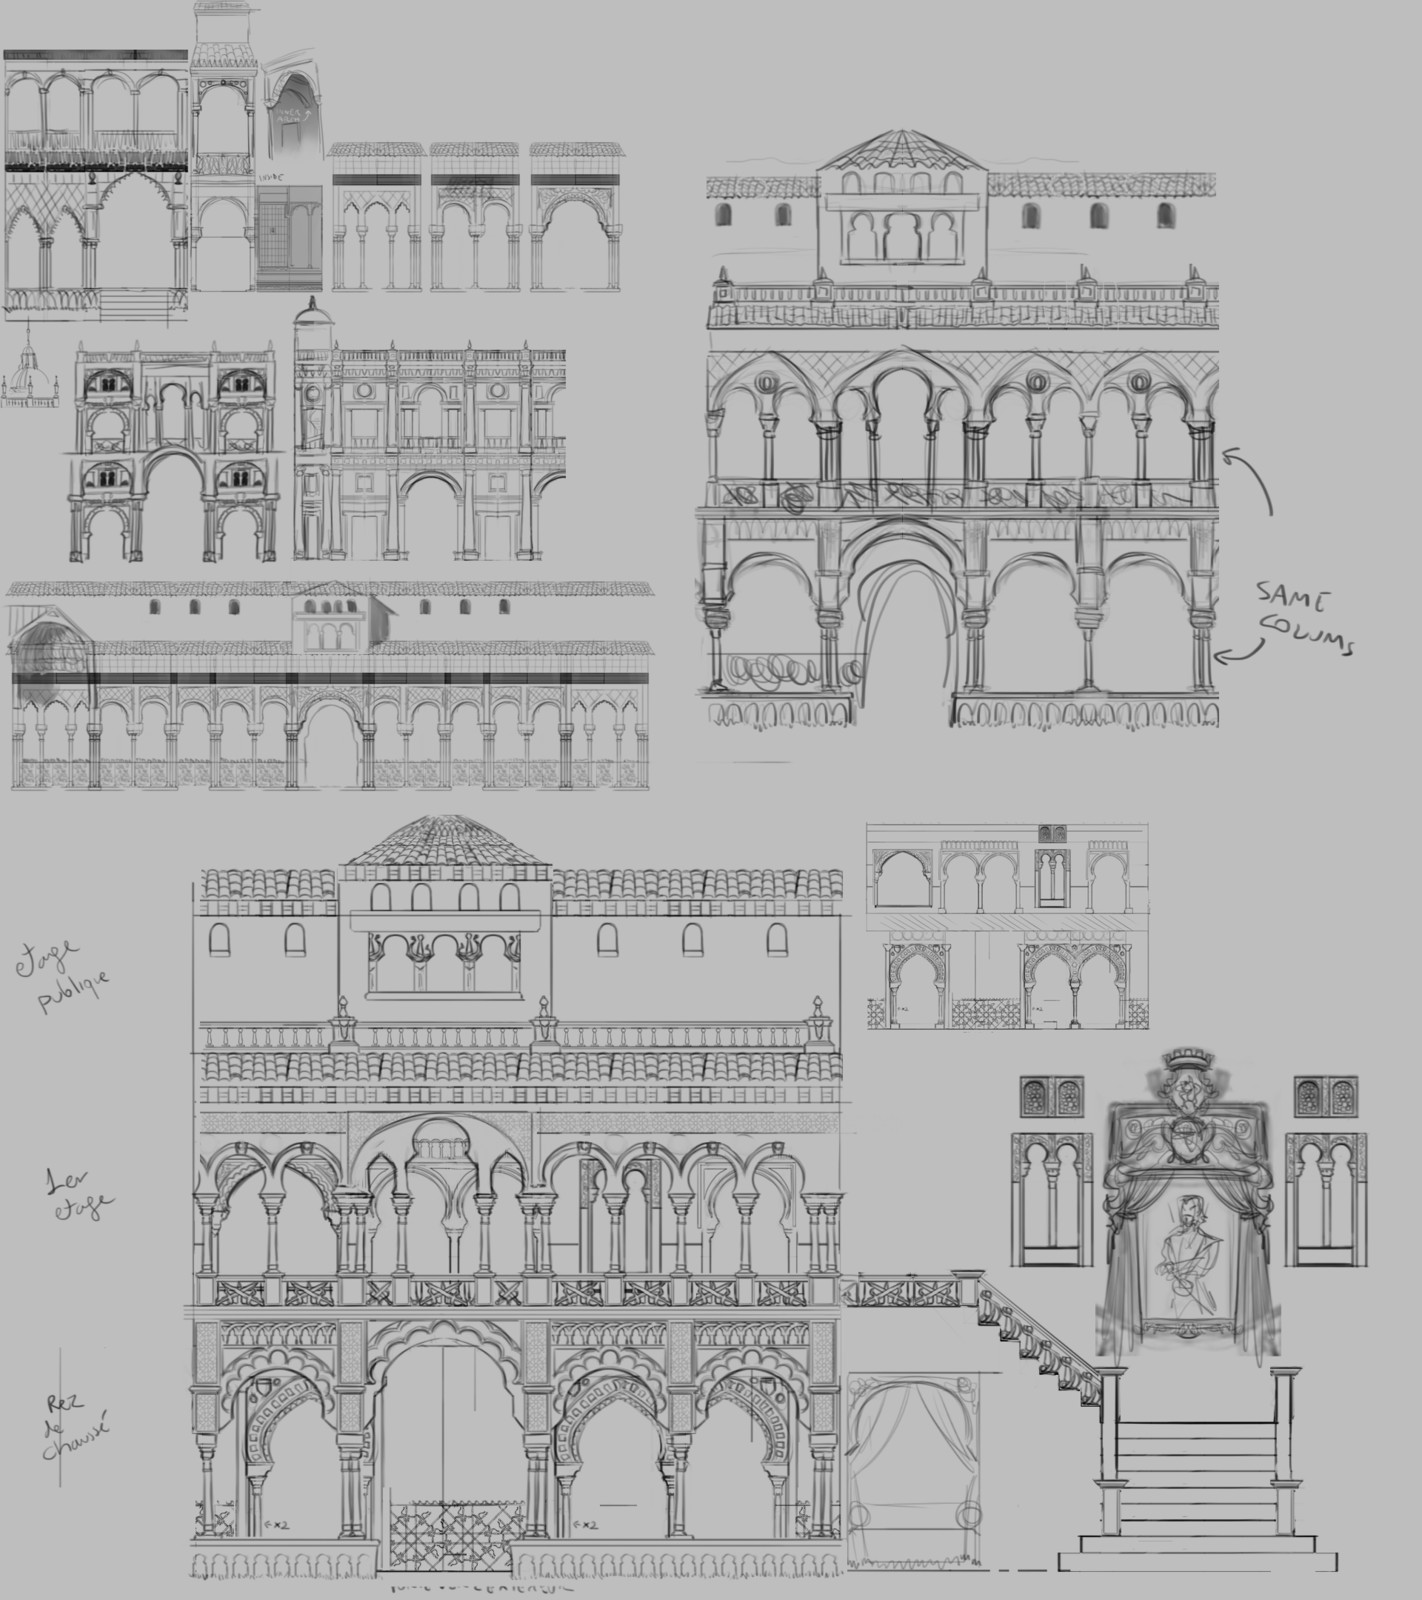 Defining the shape language and architecture.